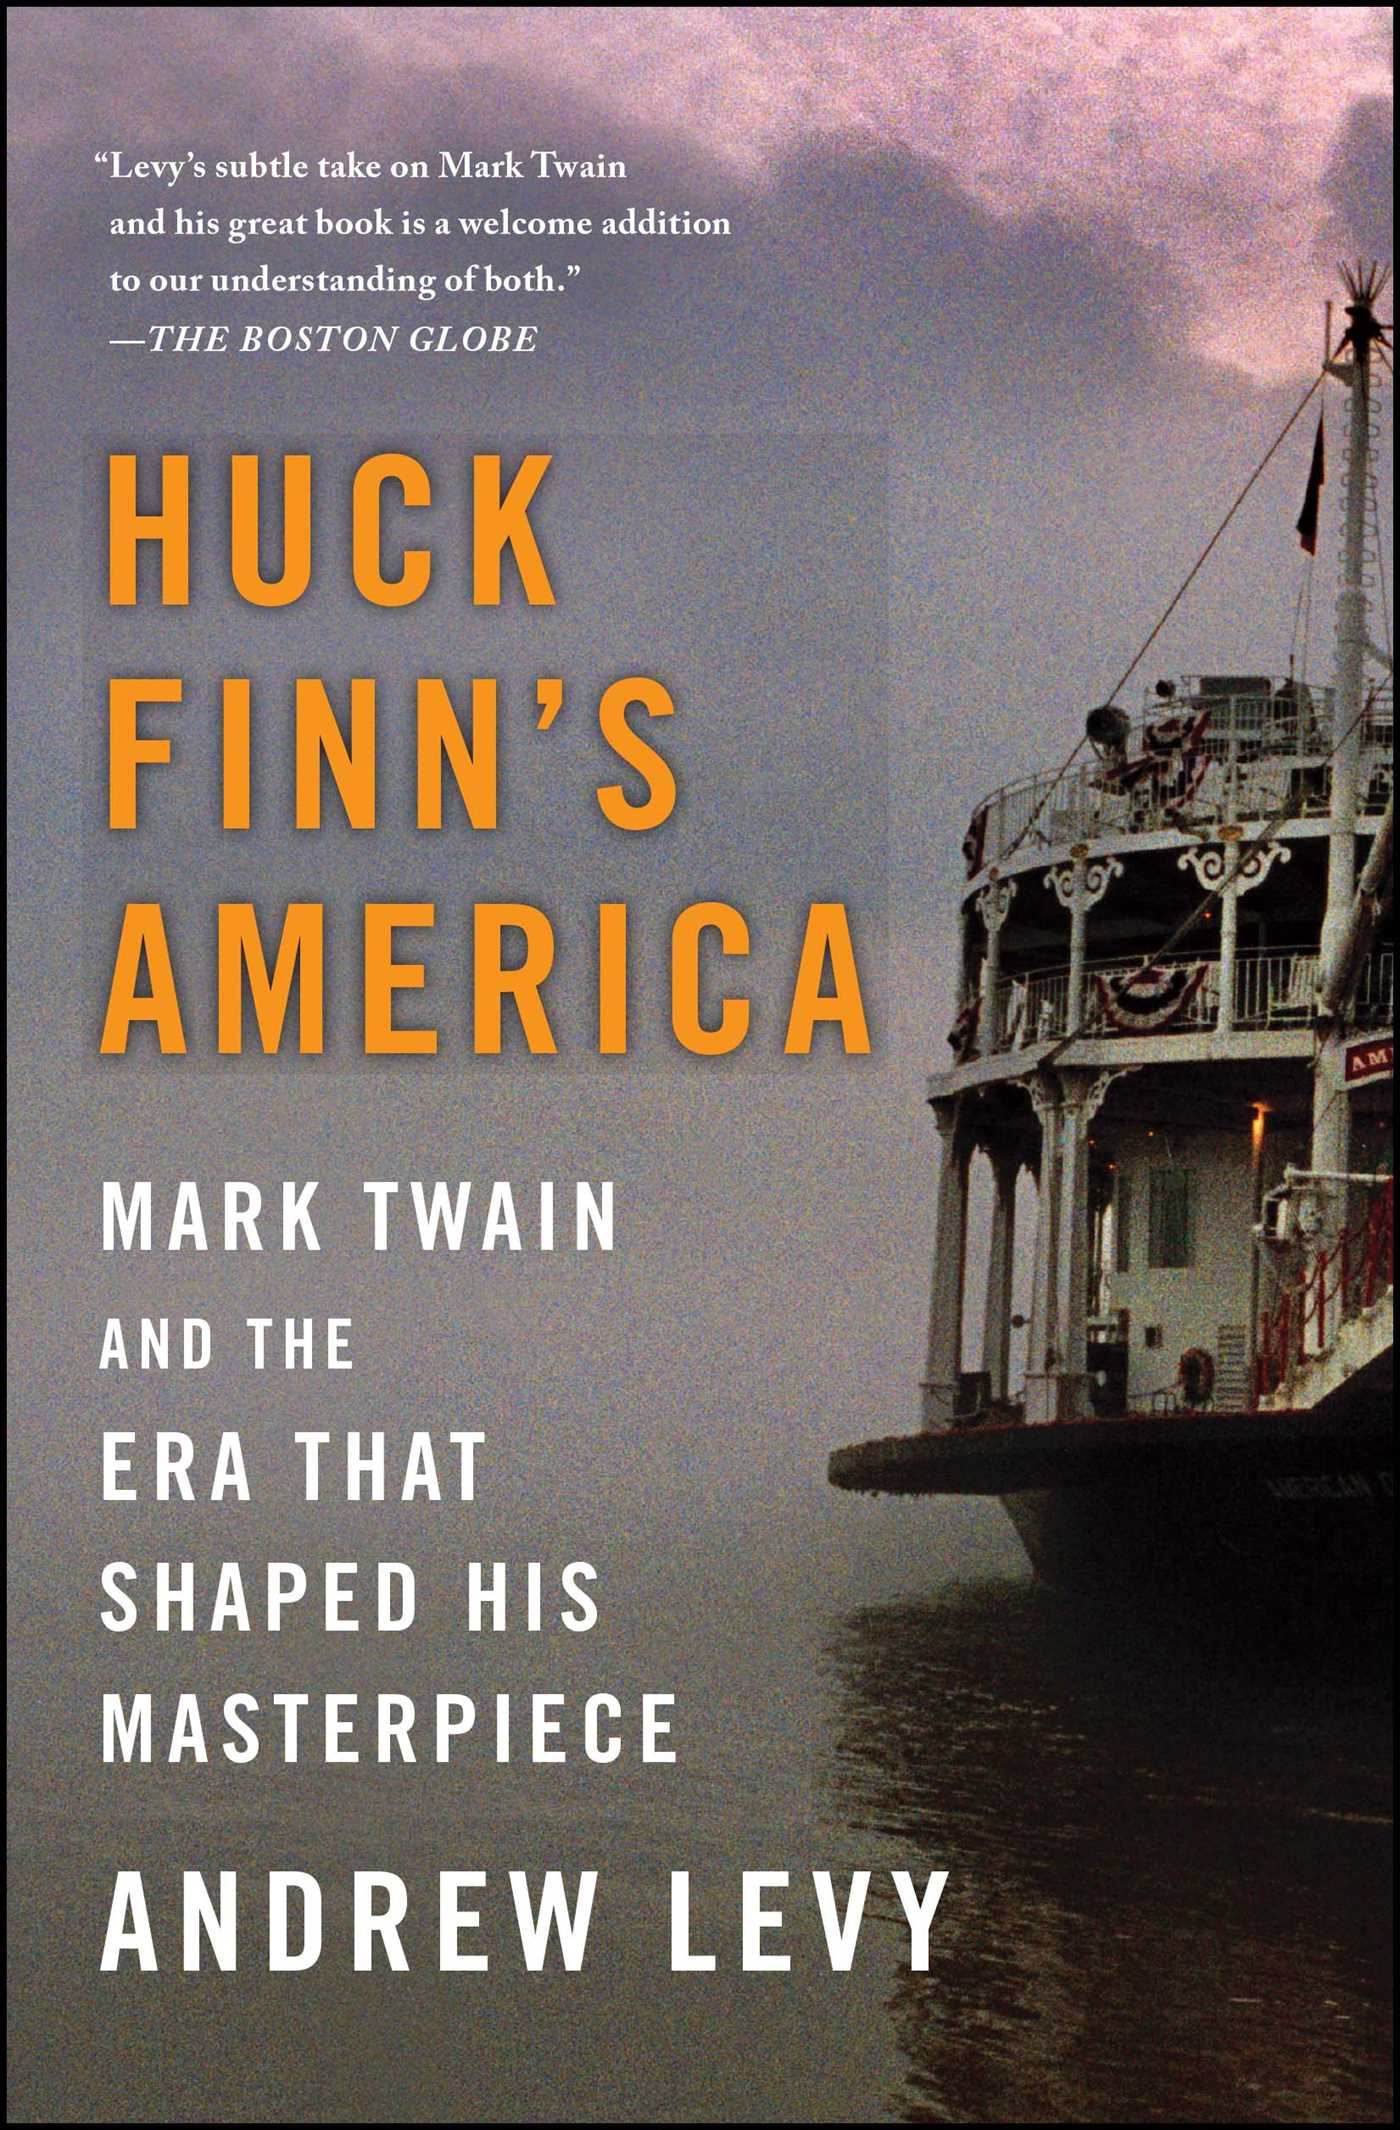 Huck Finn's America | Book by Andrew Levy | Official